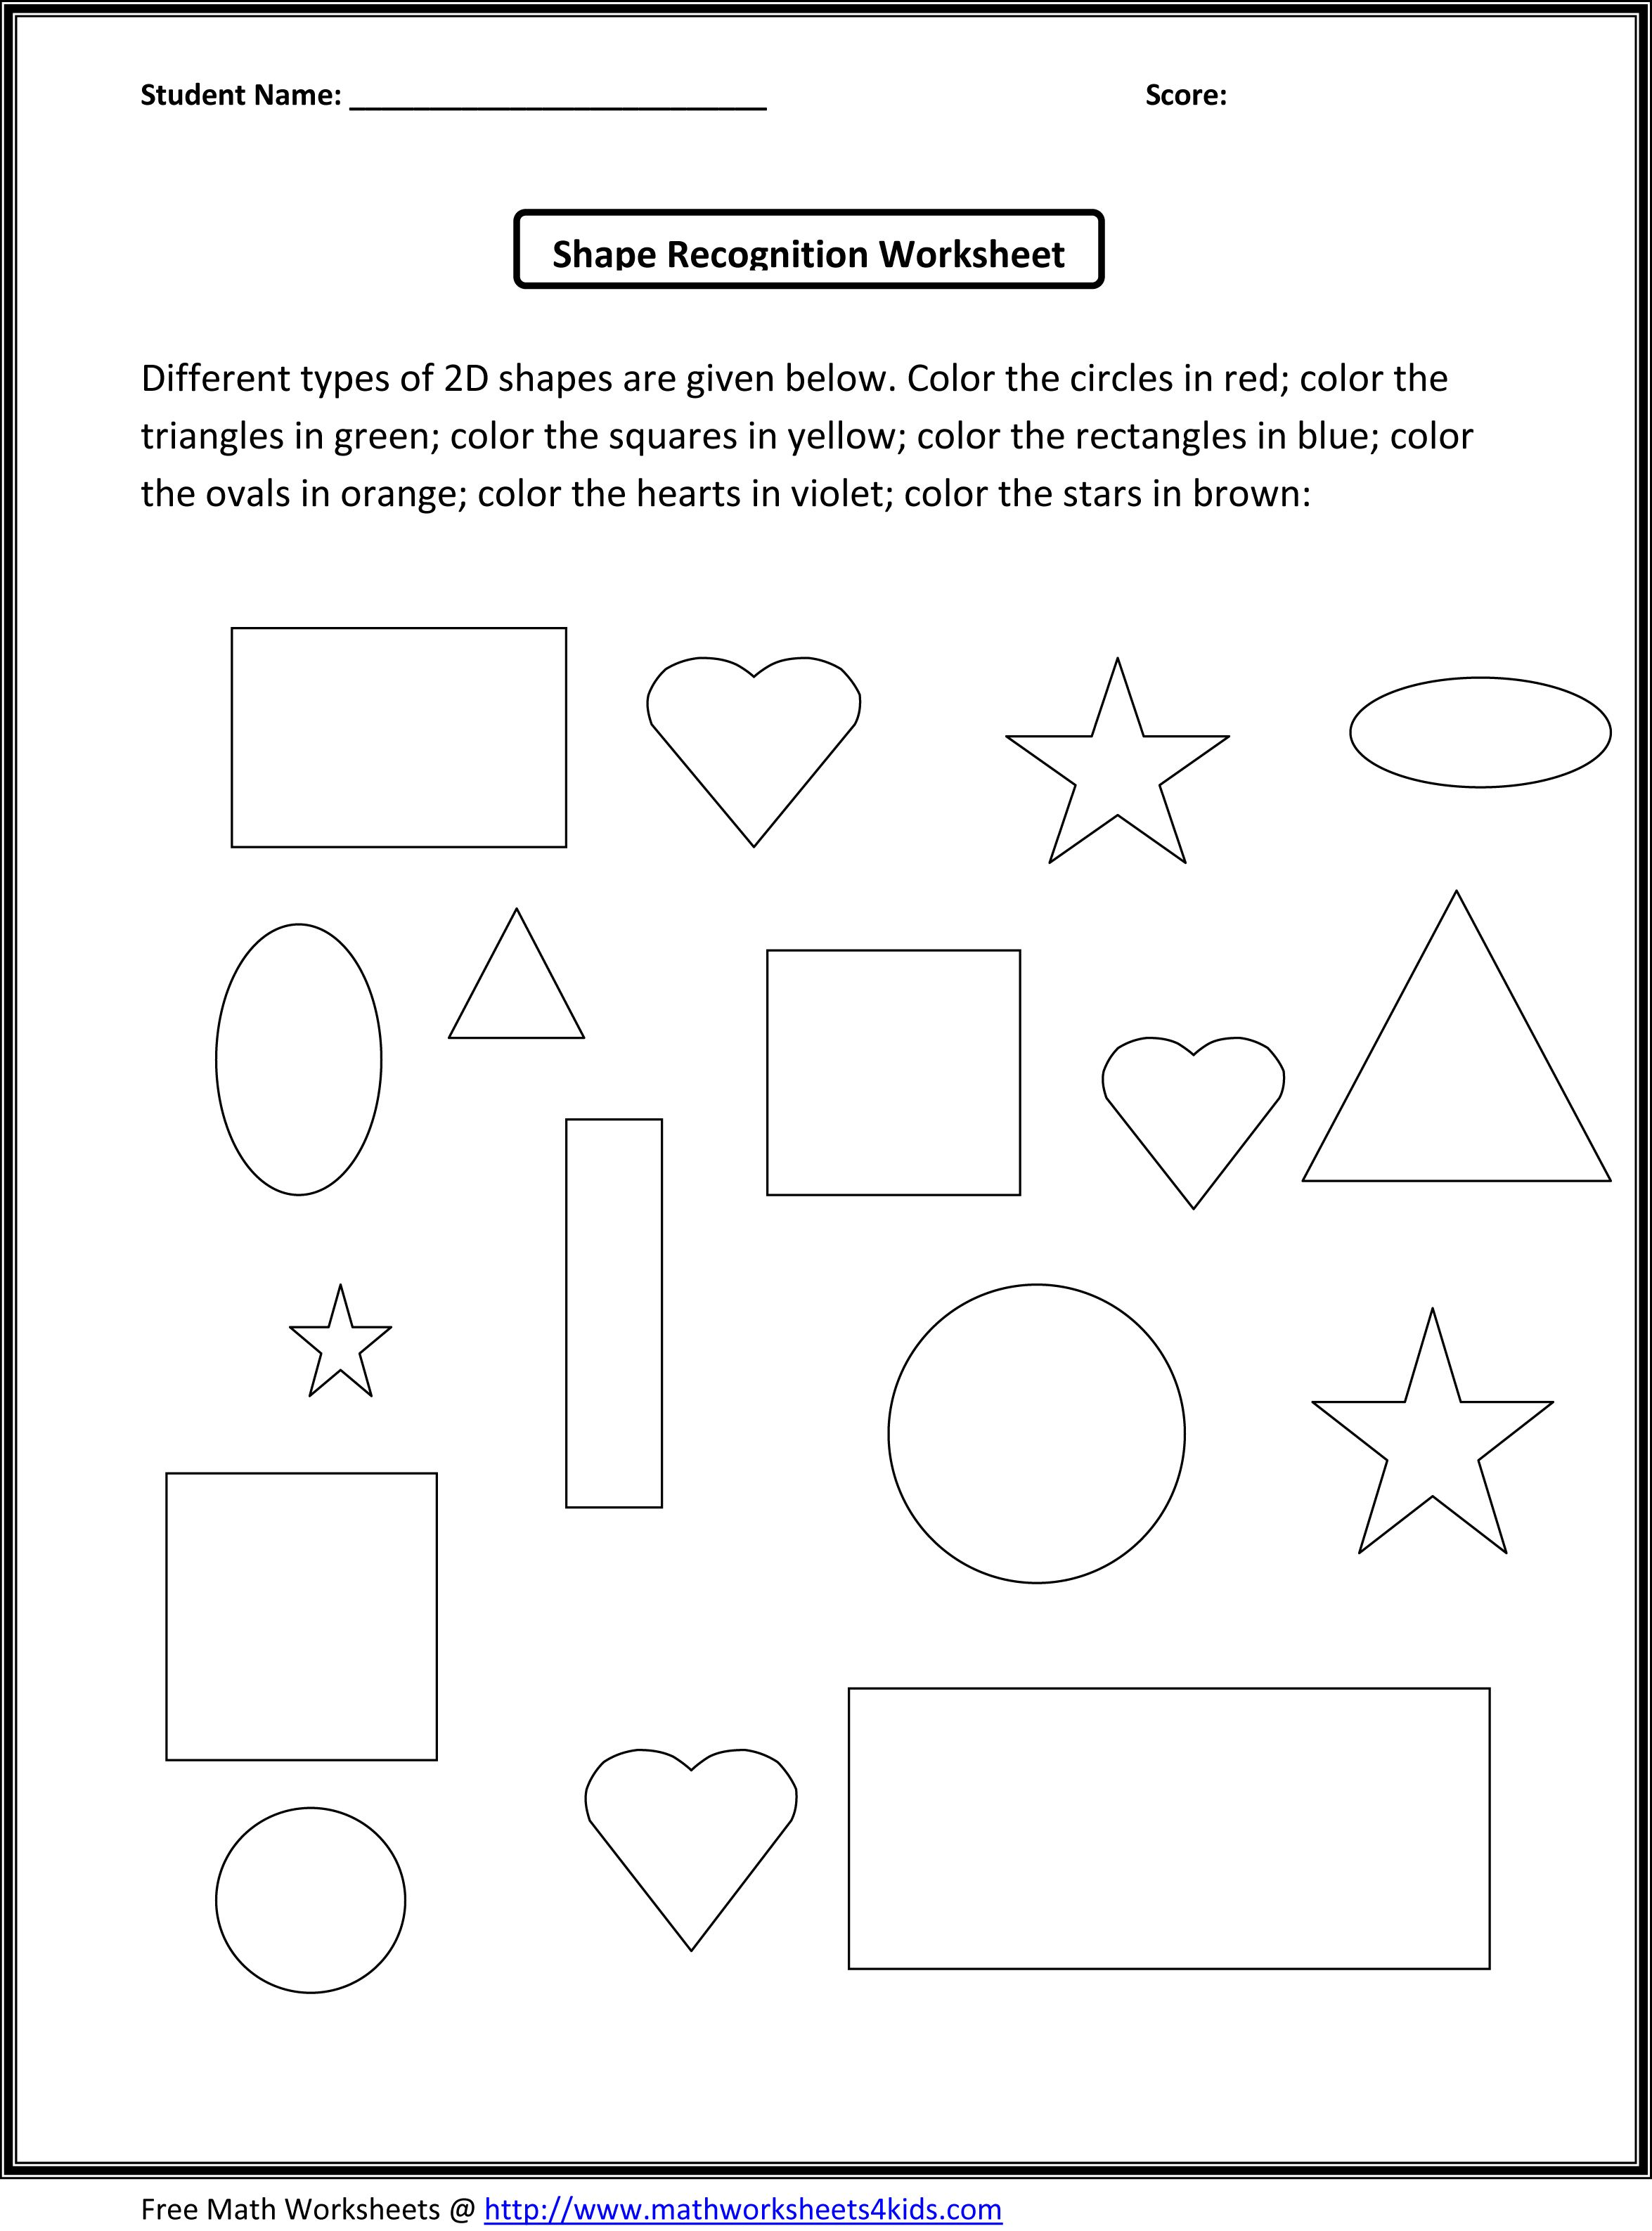 Spanish Worksheets For Kindergarten Money Worksheets This Section